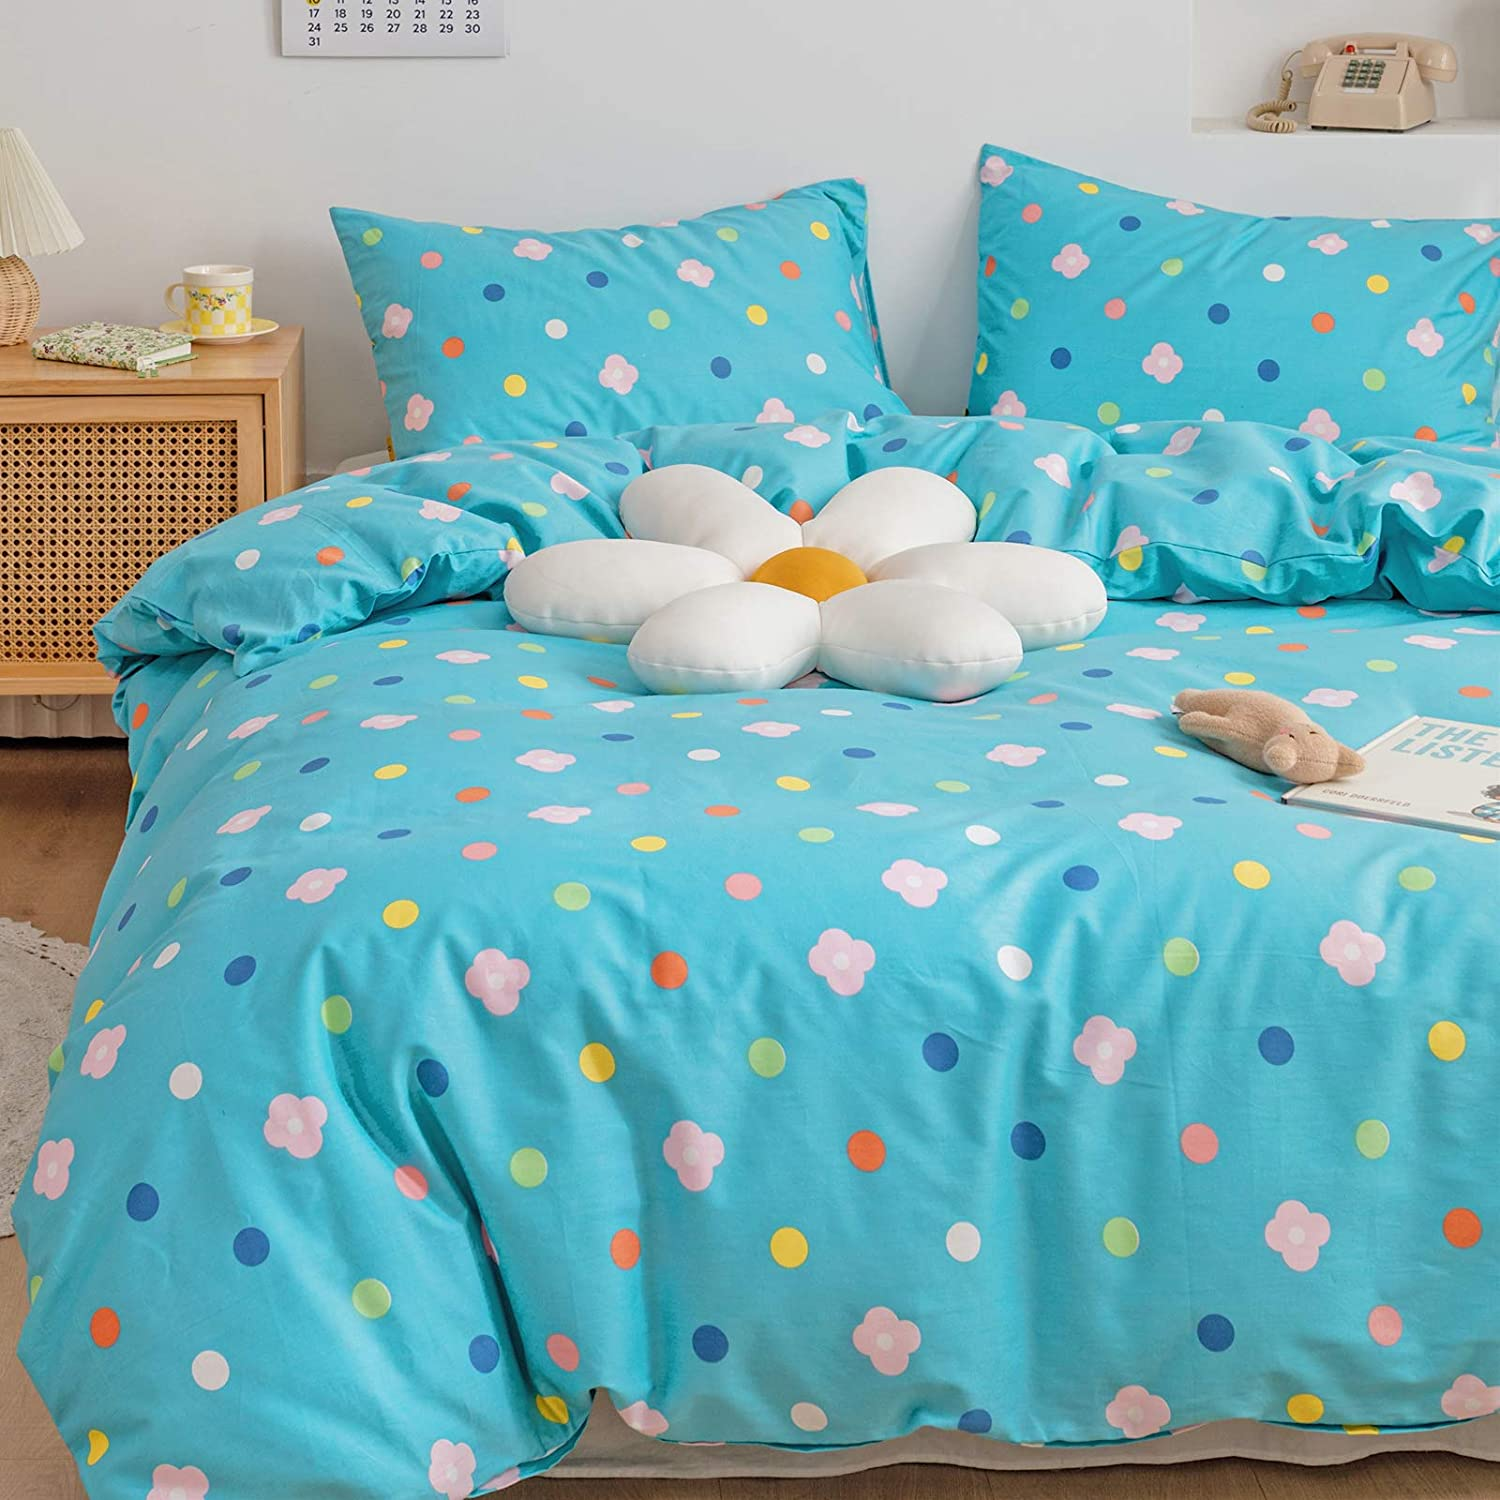 BlueBlue Polka Dot Duvet Cover Set Queen 100% Cotton Bedding for Kids Boys Girls Teens Blue White Red Yellow Floral on Teal 1 Dots Comforter Cover Full with Zipper Ties 2 Pillowcases Queen